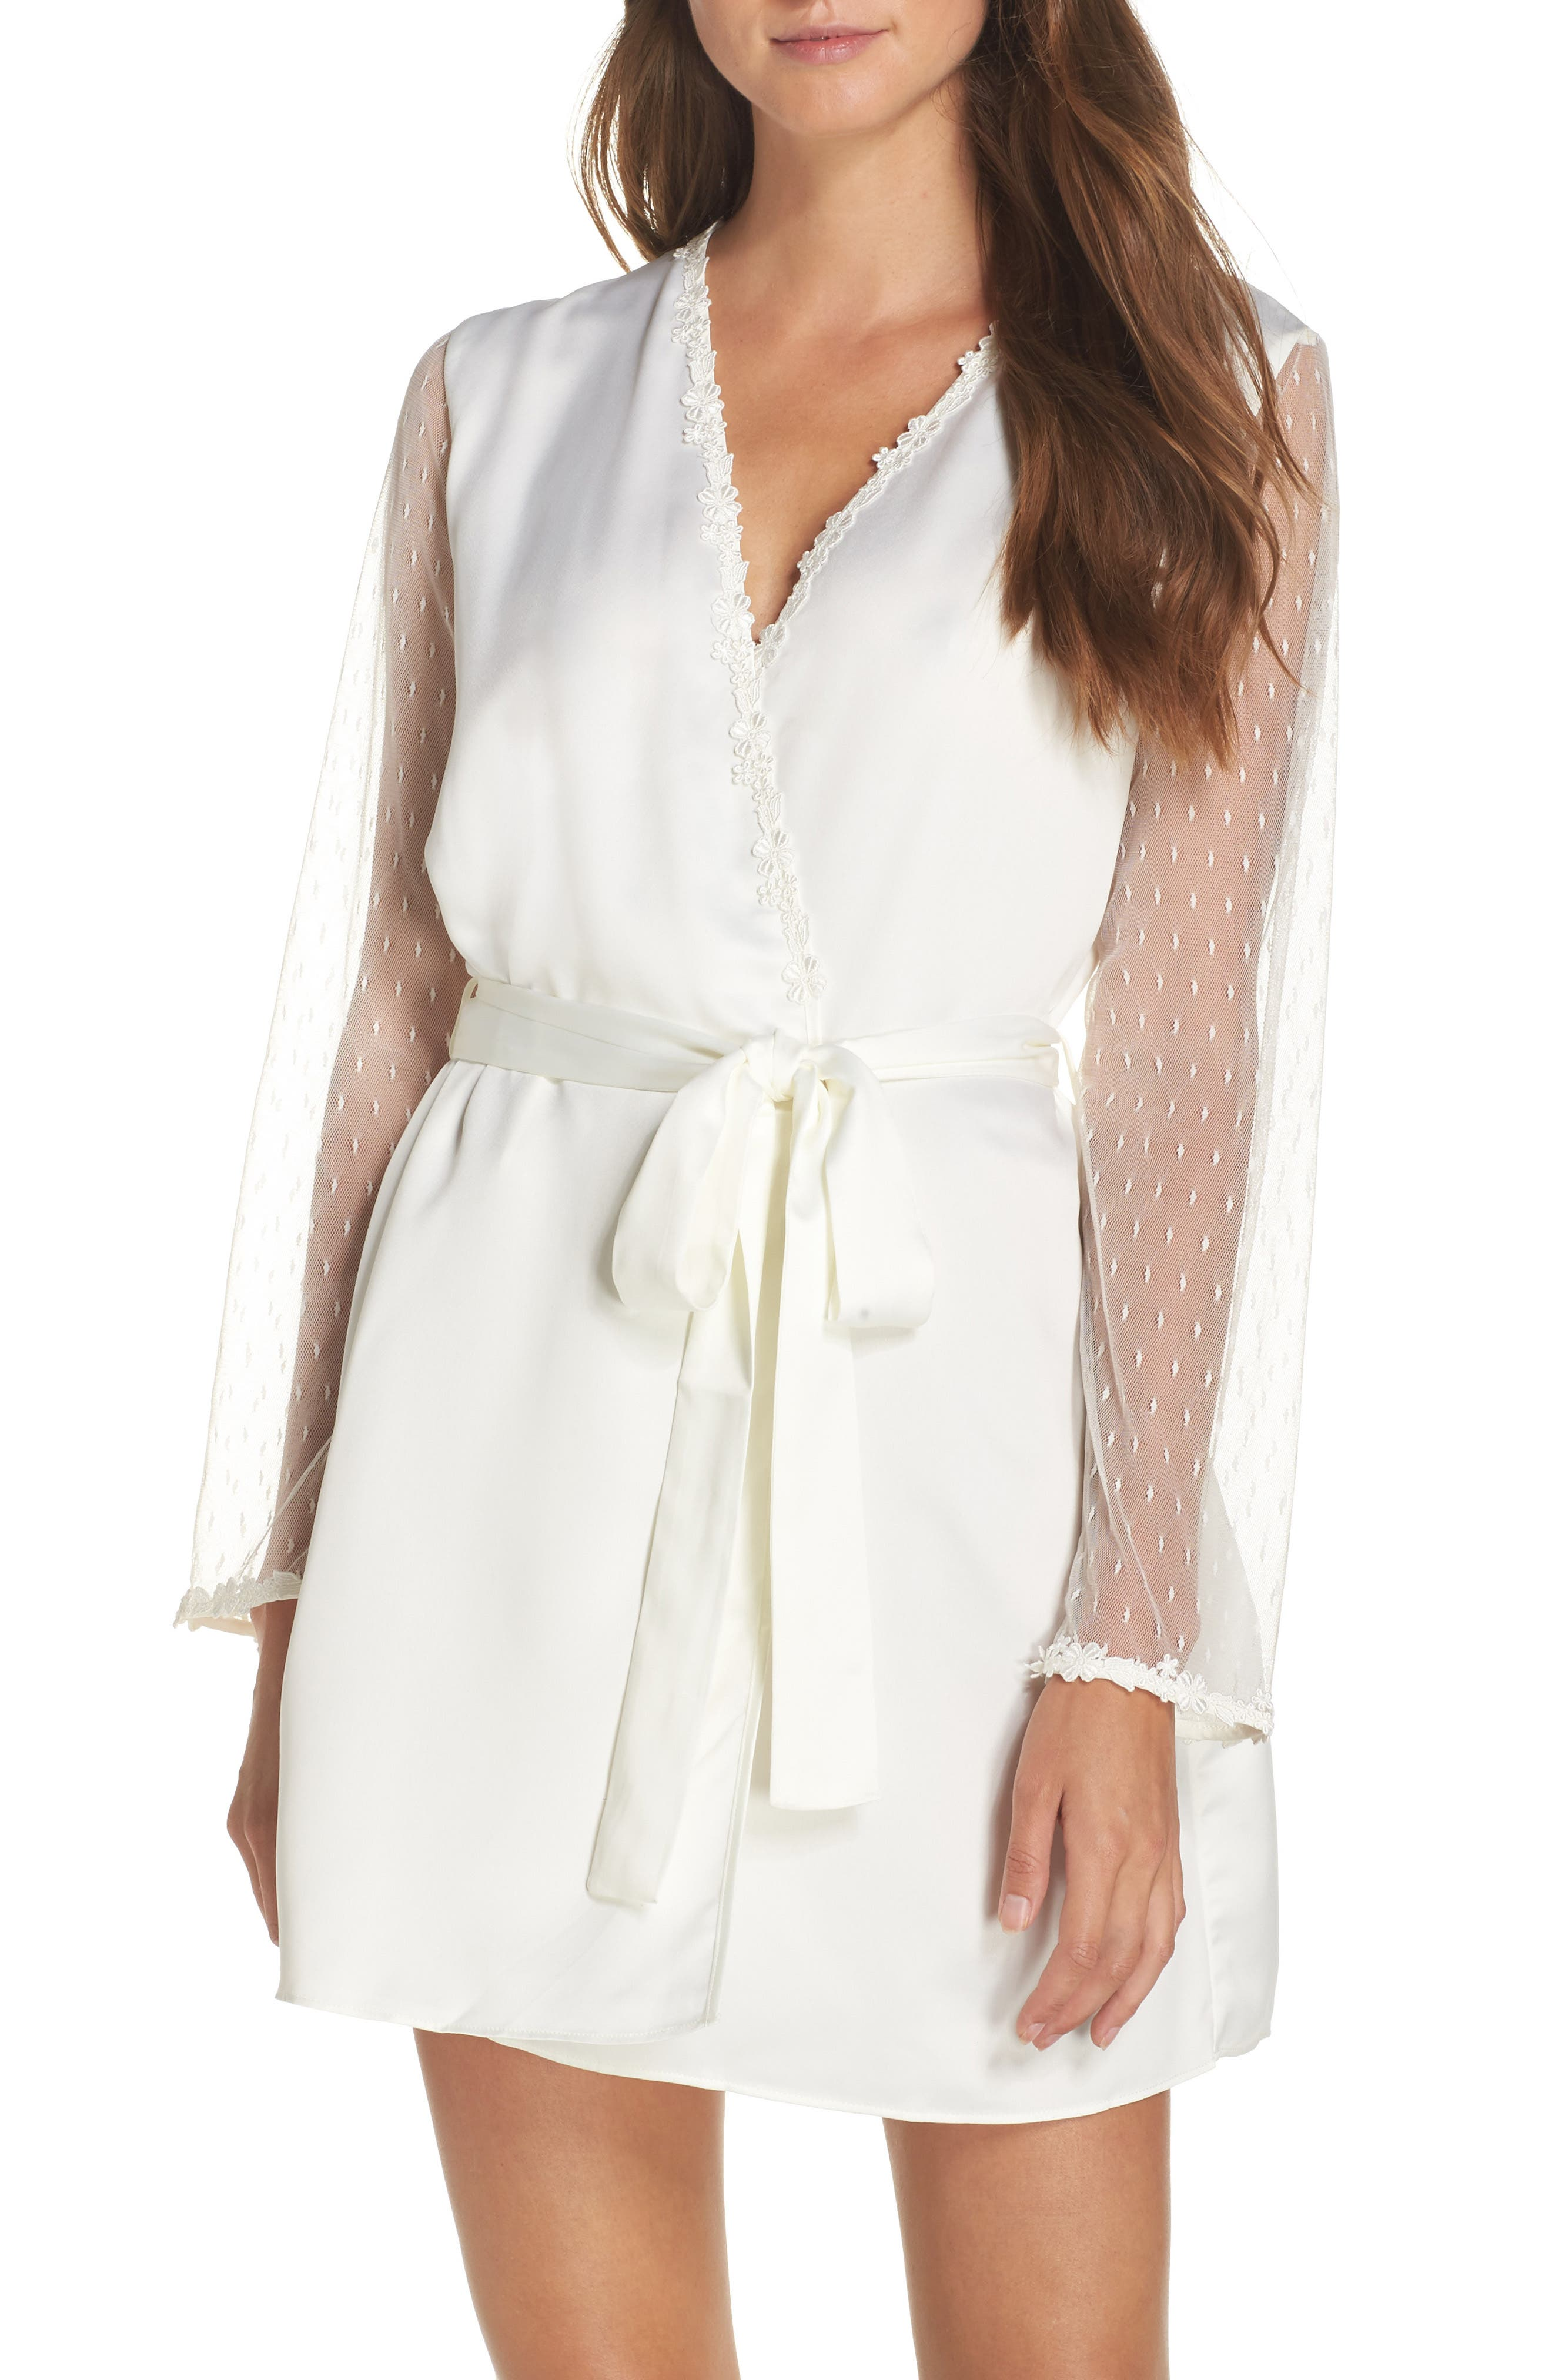 FLORA NIKROOZ Showstopper Charmeuse Cover-Up Robe in Ivory